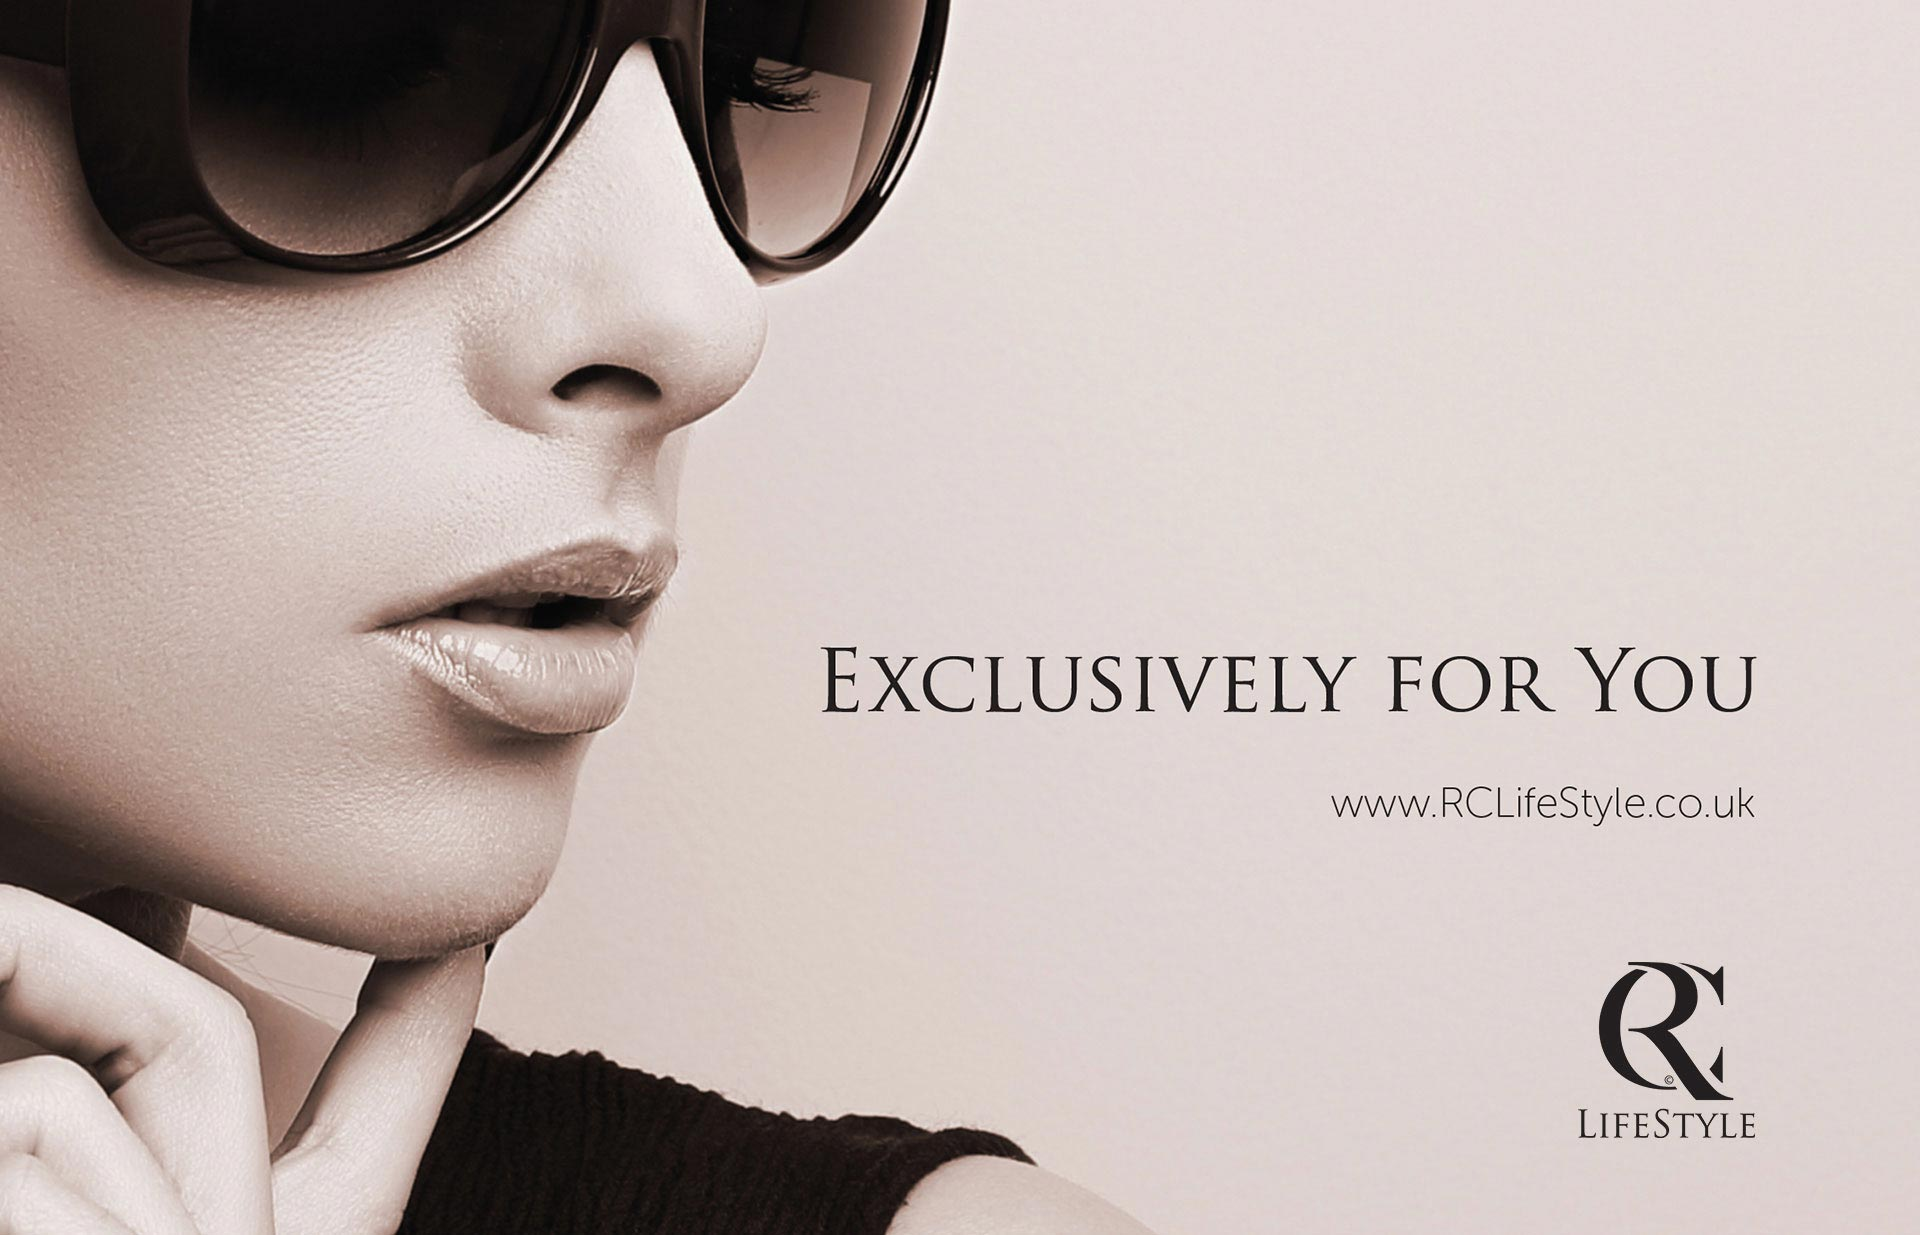 RC Life Style logo and brand concept. Luxury brand and lifestyle image of girl. Creative courtesy of Twistedgifted.